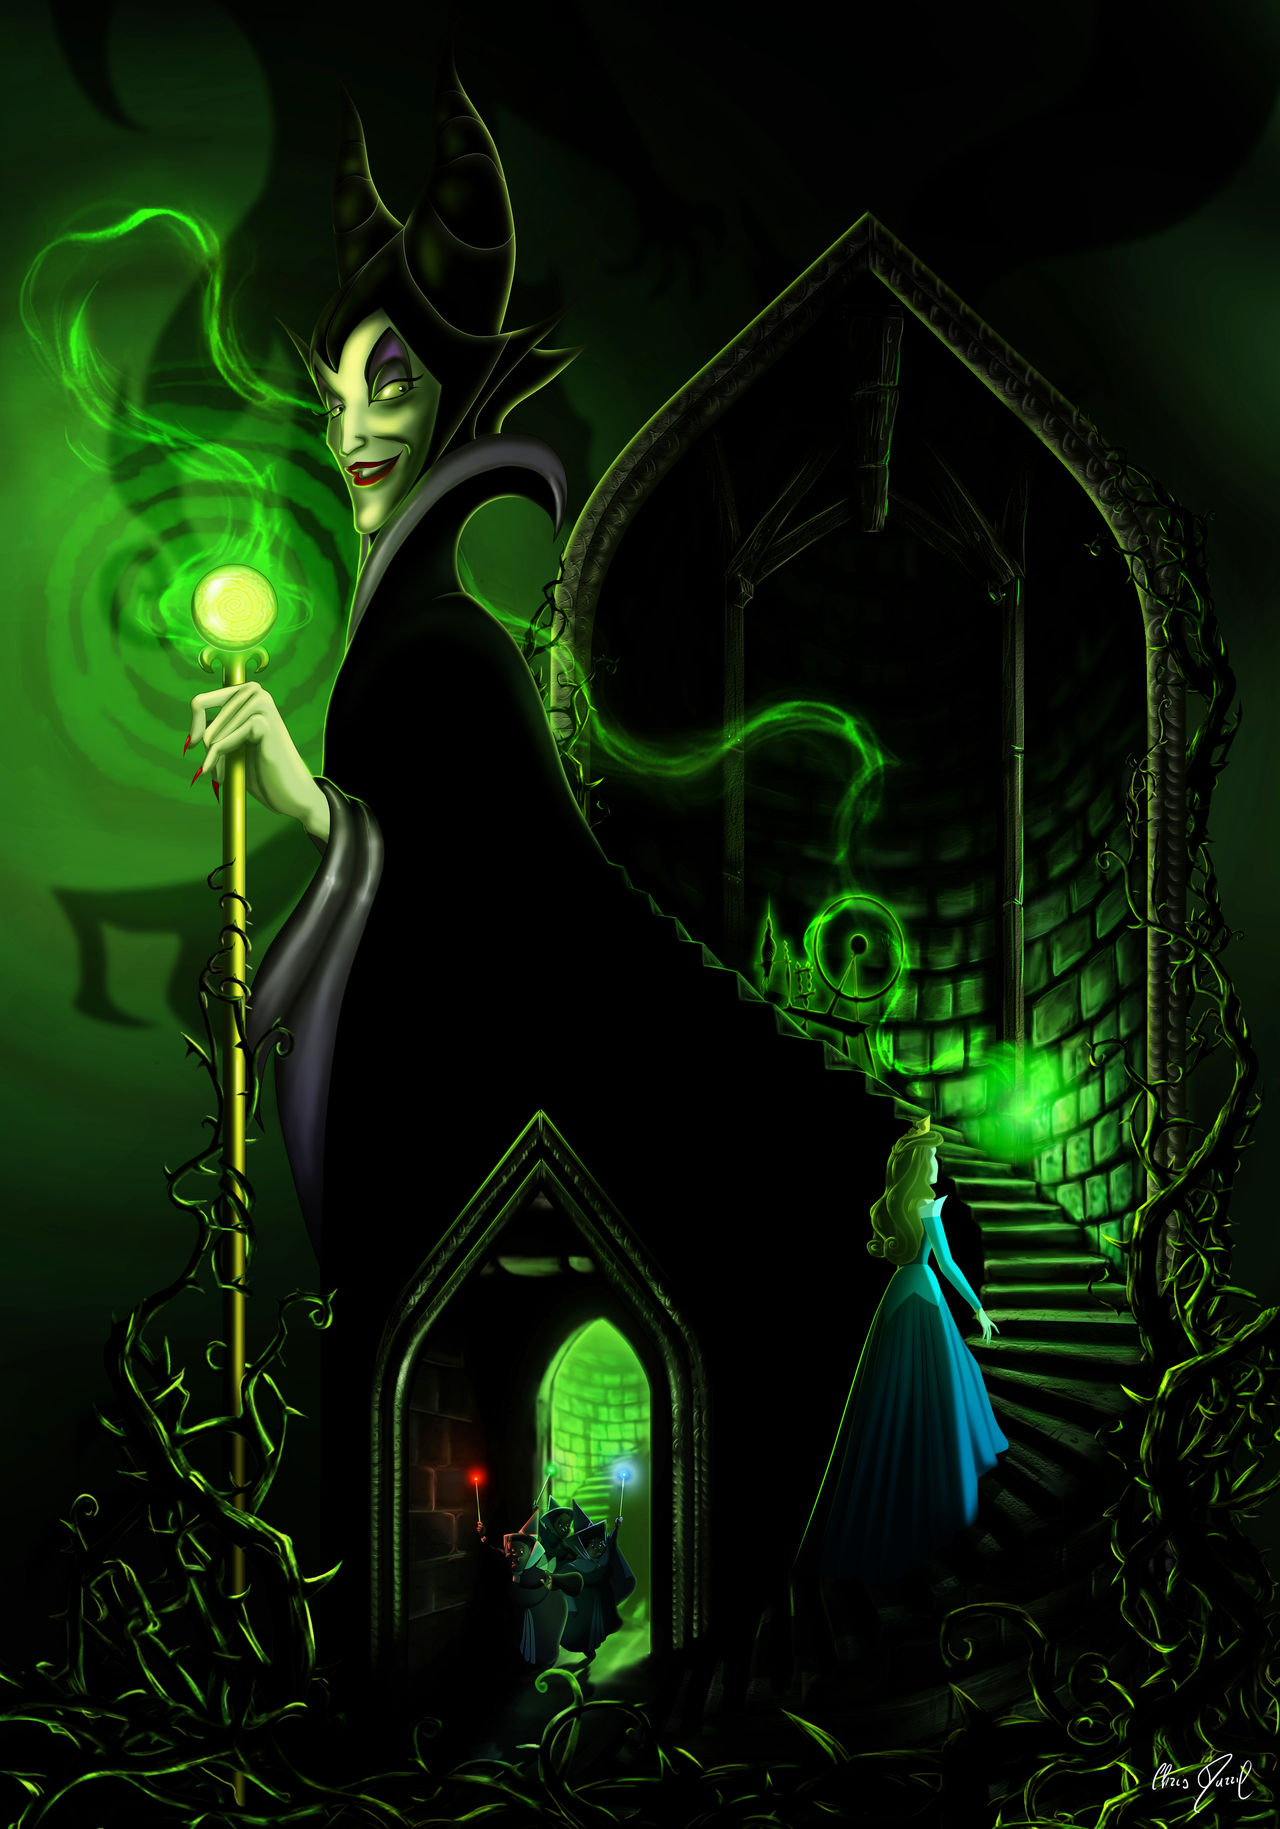 SLEEPING BEAUTY - Touch the spindle! (Maleficent) by Chris-Darril